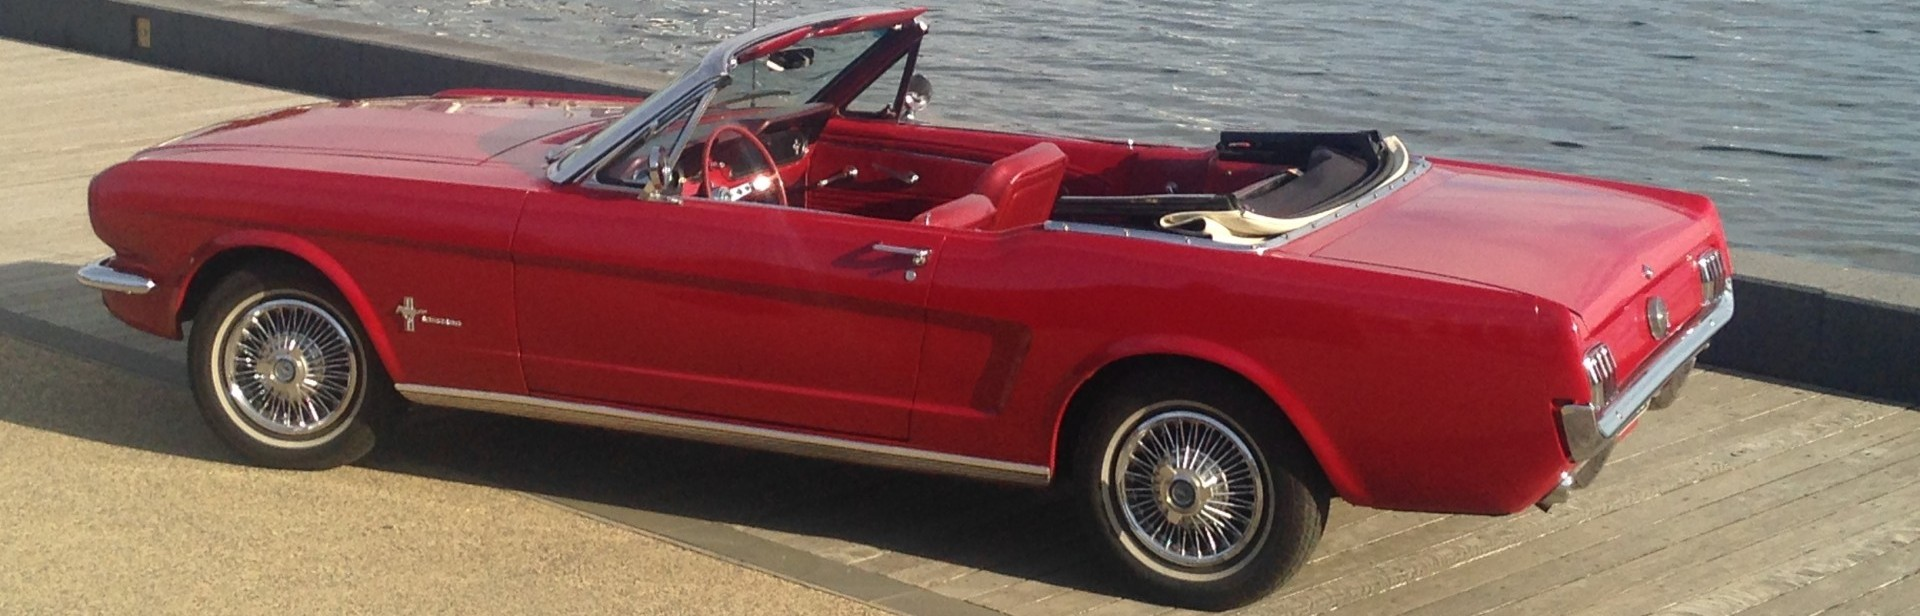 1966 Mustang Convertible on the Geelong Waterfront